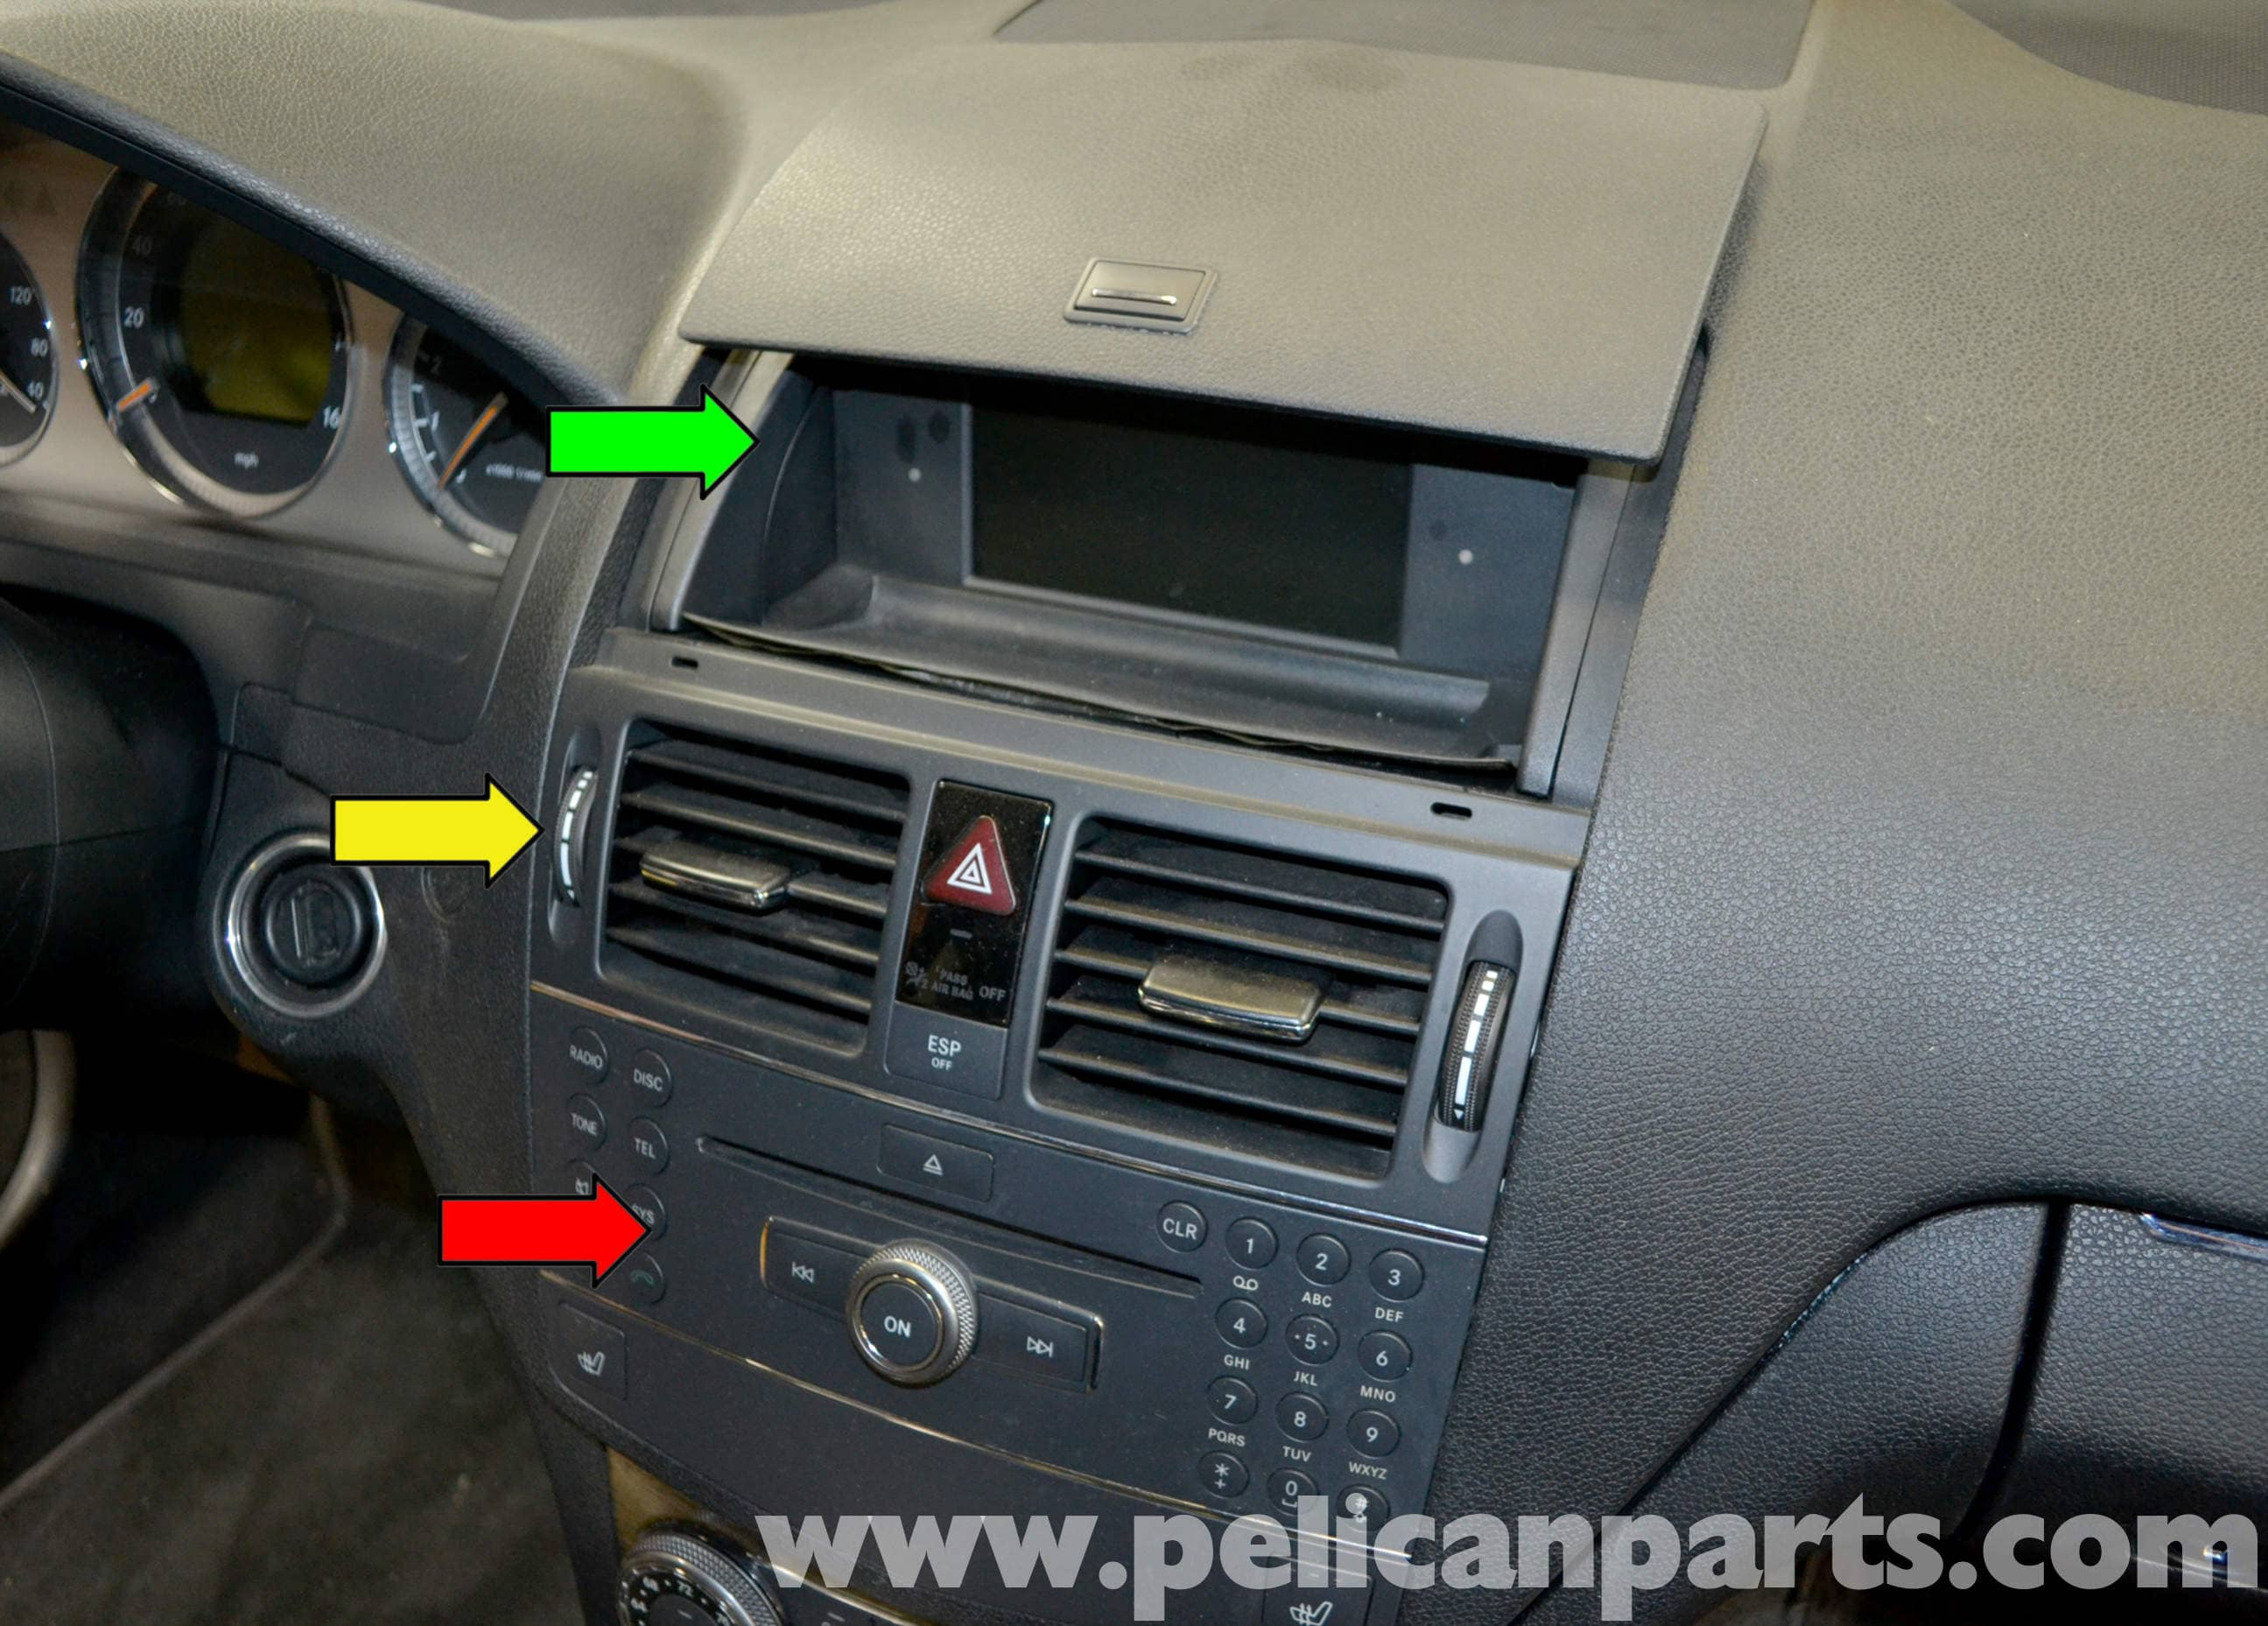 Mercedes benz w204 stereo removal 2008 2014 c250 c300 for Mercedes benz stereo